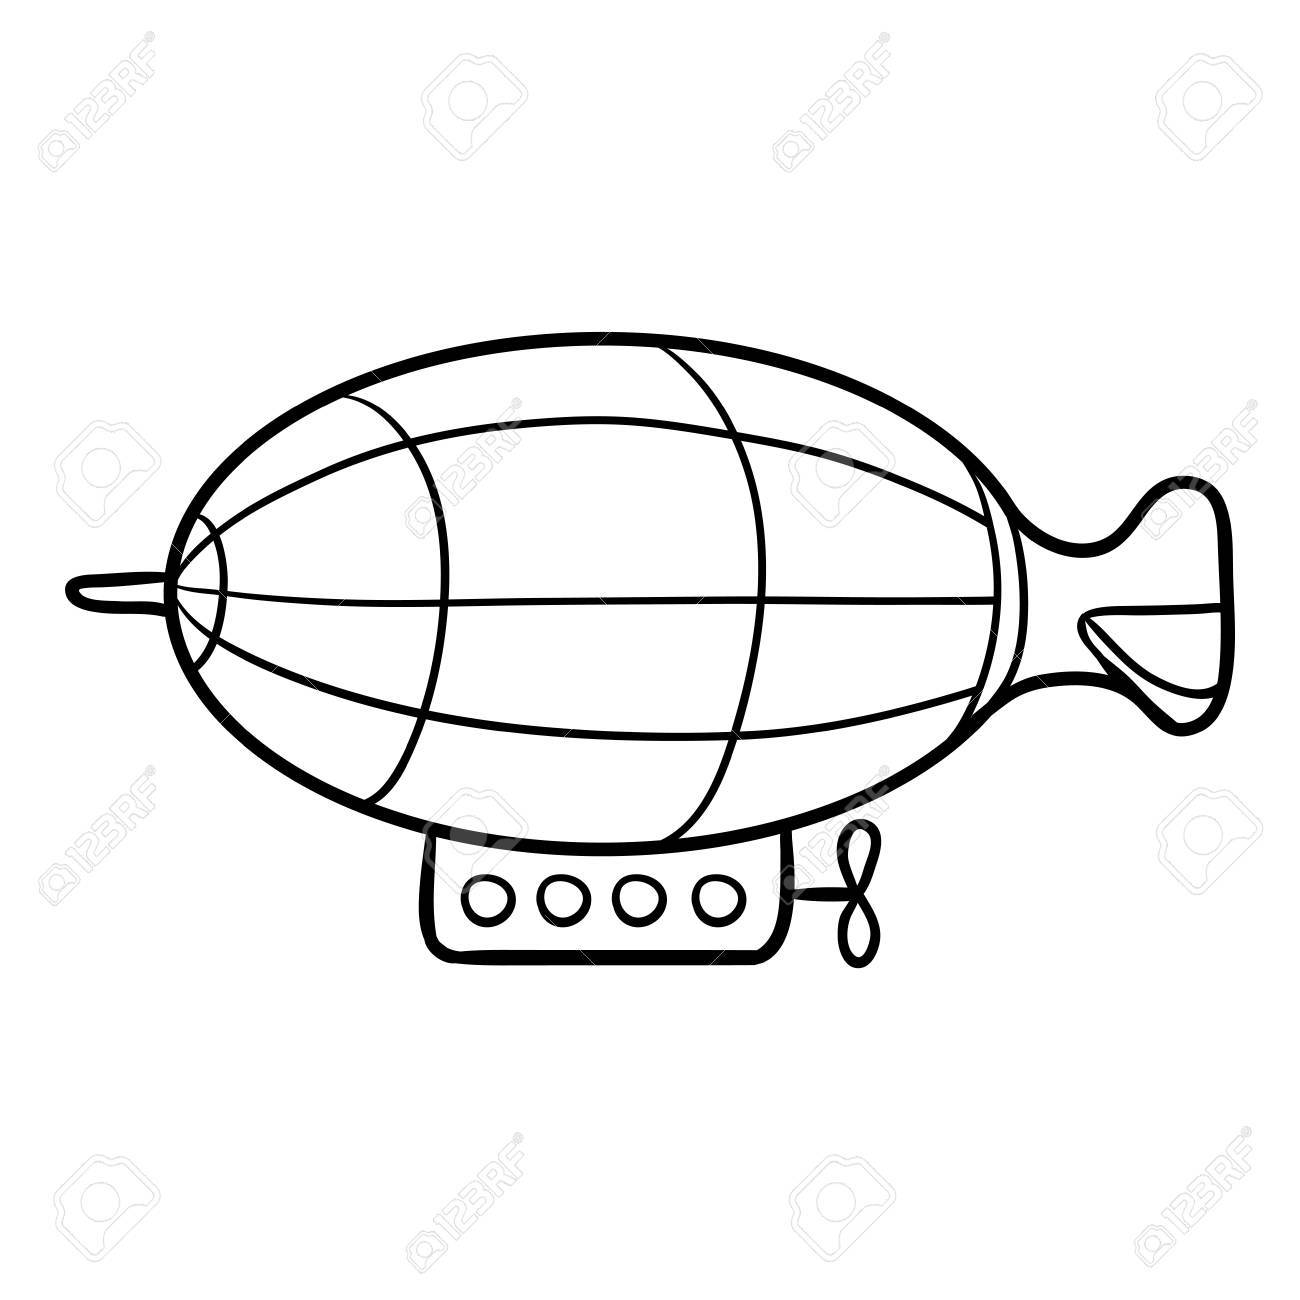 1300x1300 Coloring Book For Children, Airship Royalty Free Cliparts, Vectors